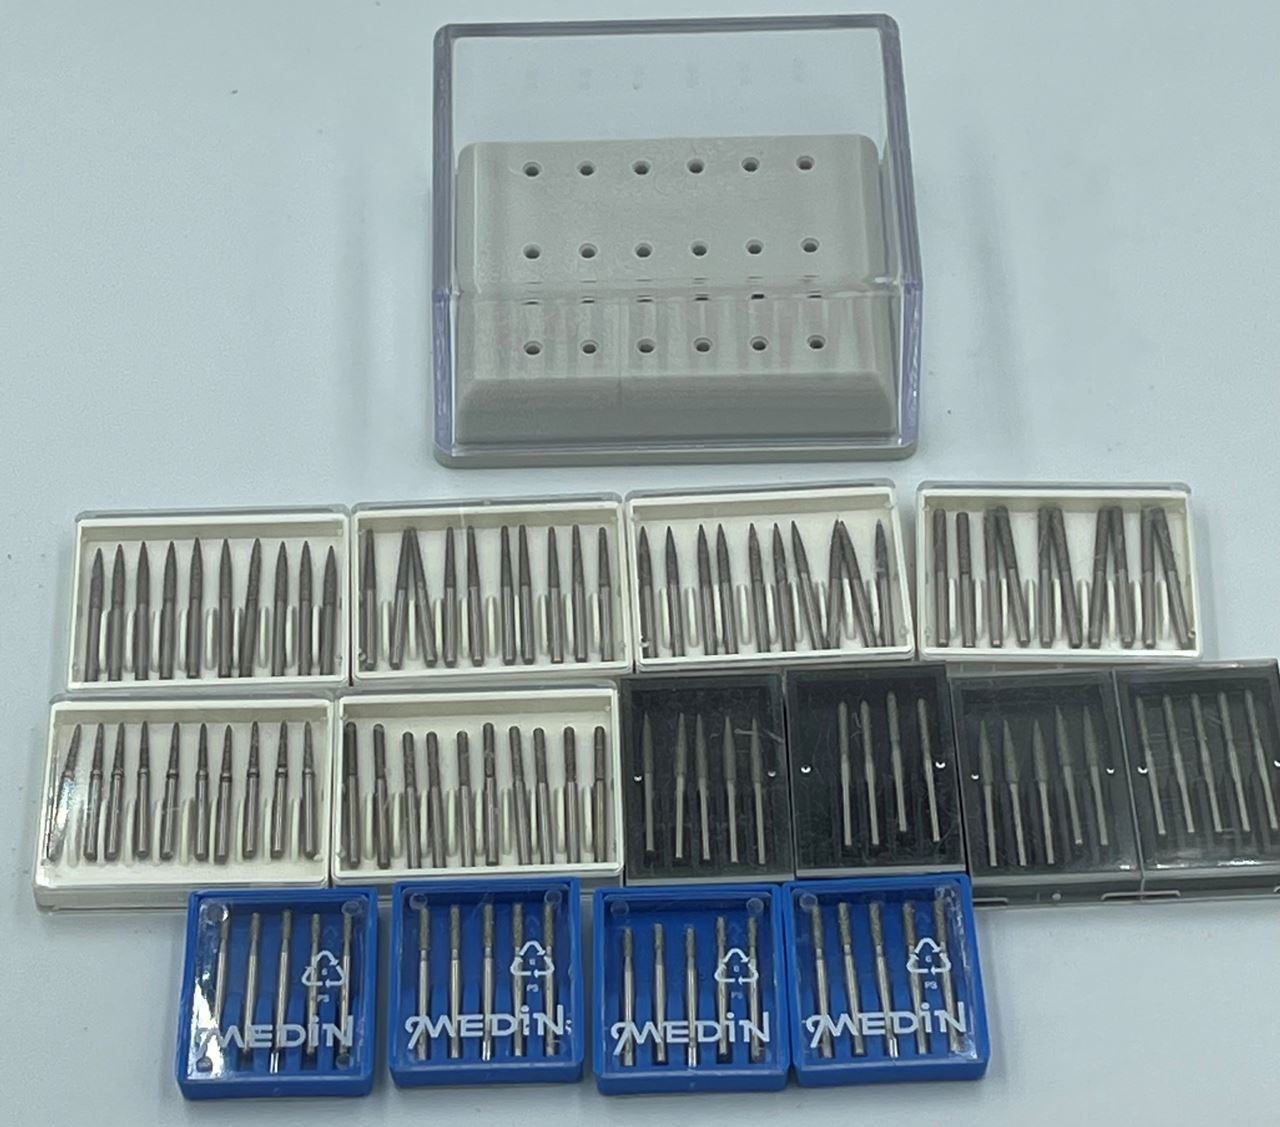 Picture of 100 Assorted FG Diamond Burs + 18 Bur Autoclavable Tray